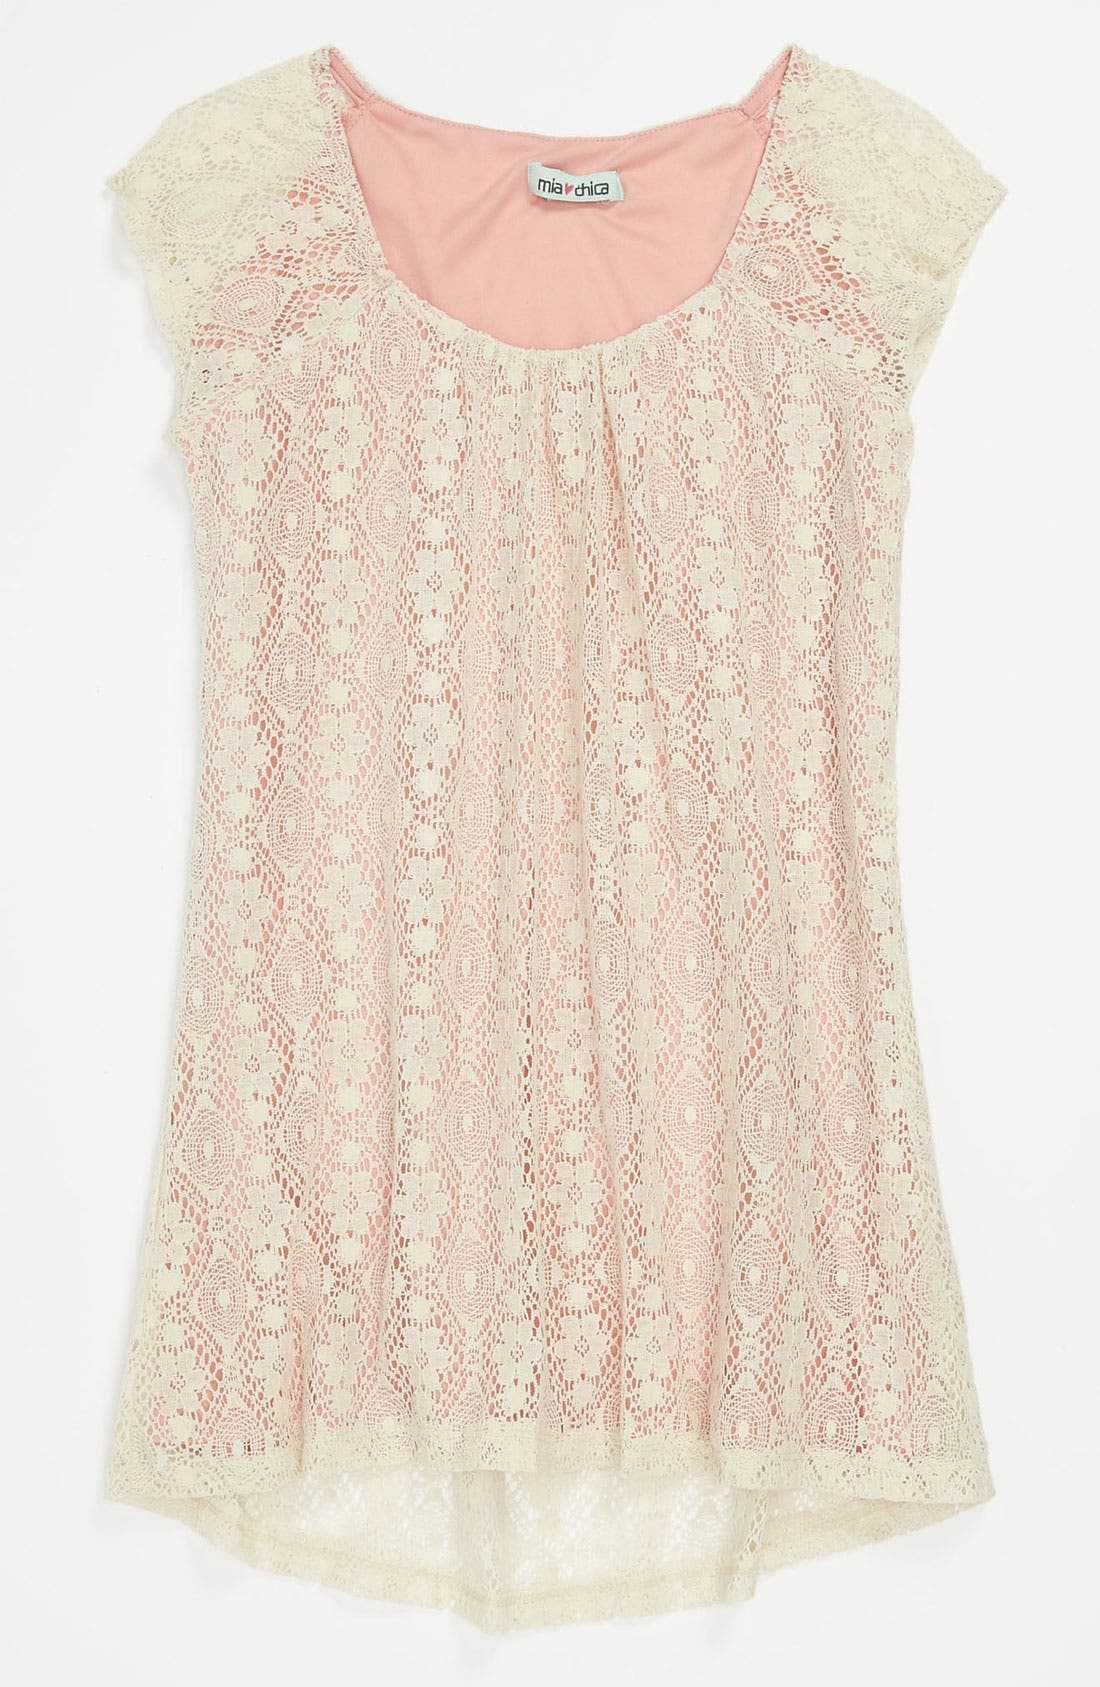 Main Image - Mia Chica Lace Overlay Trapeze Dress (Big Girls)